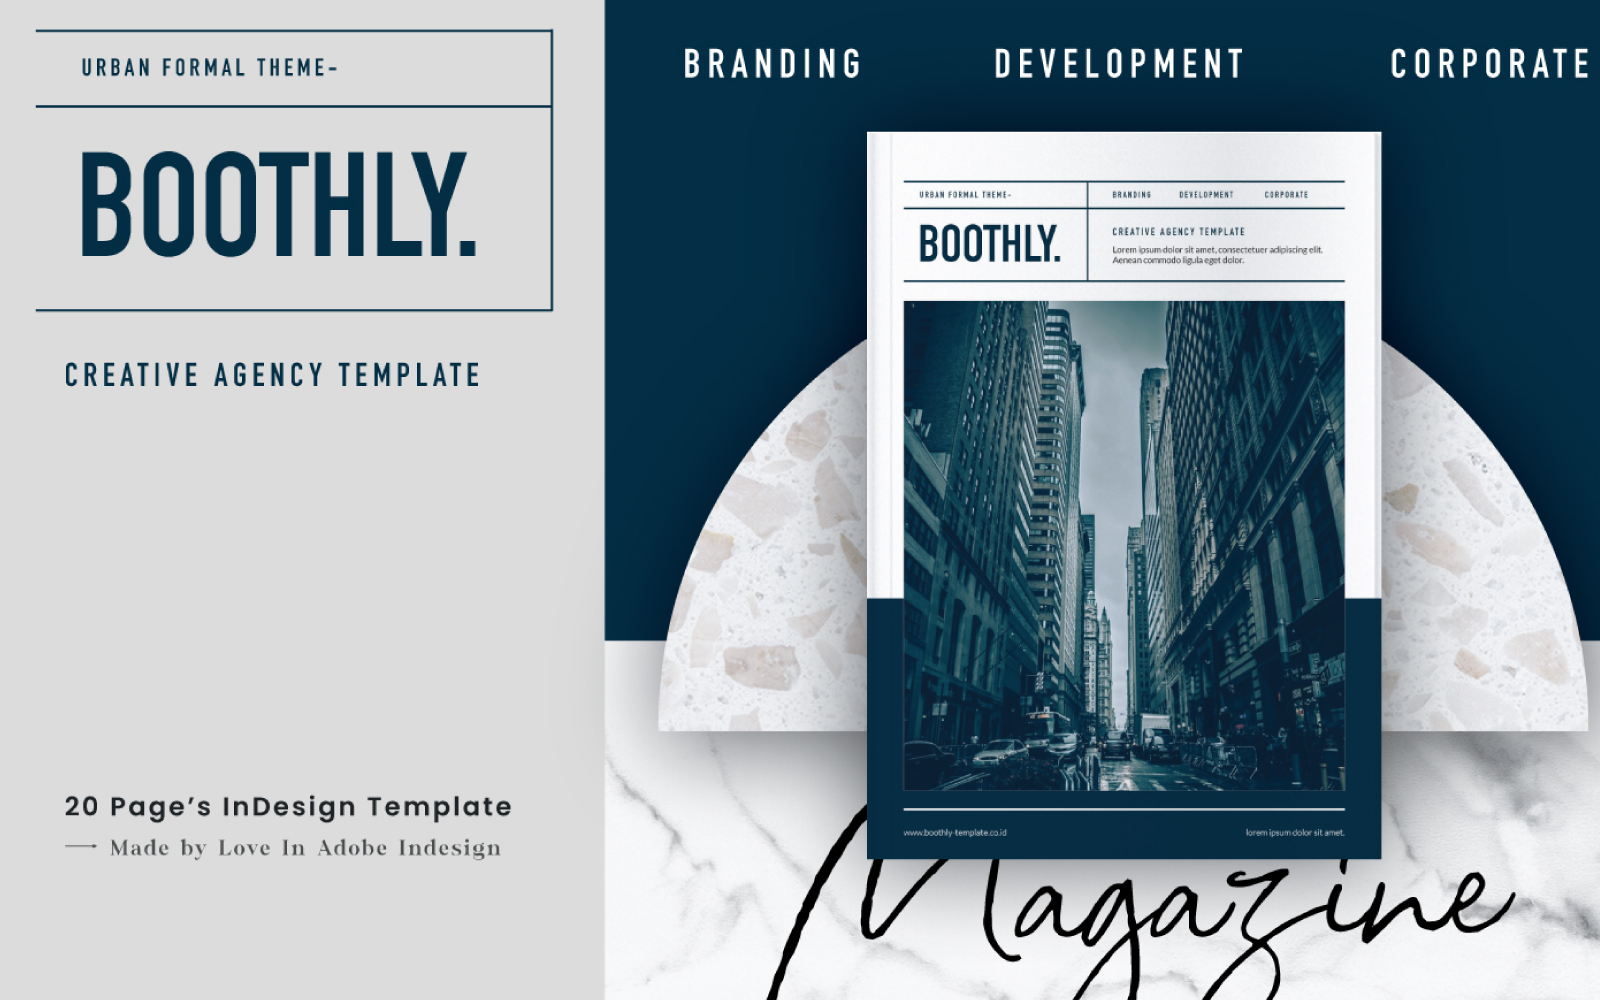 BOOTHLY CREATIVE AGENCY Magazine Template